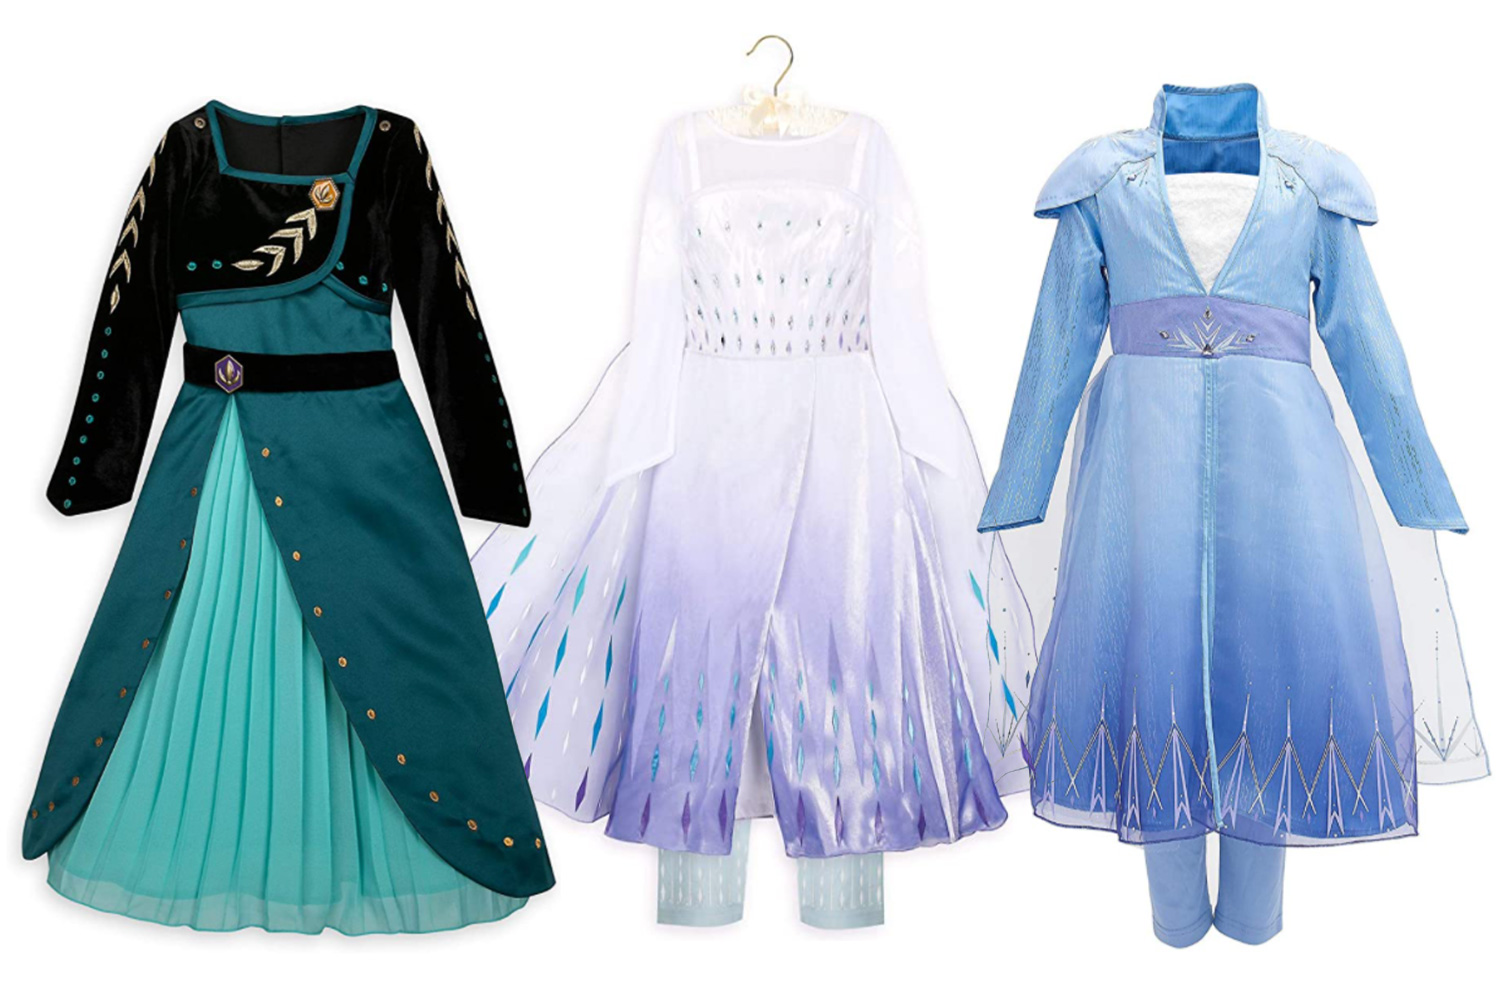 Frozen costumes make a great Christmas present